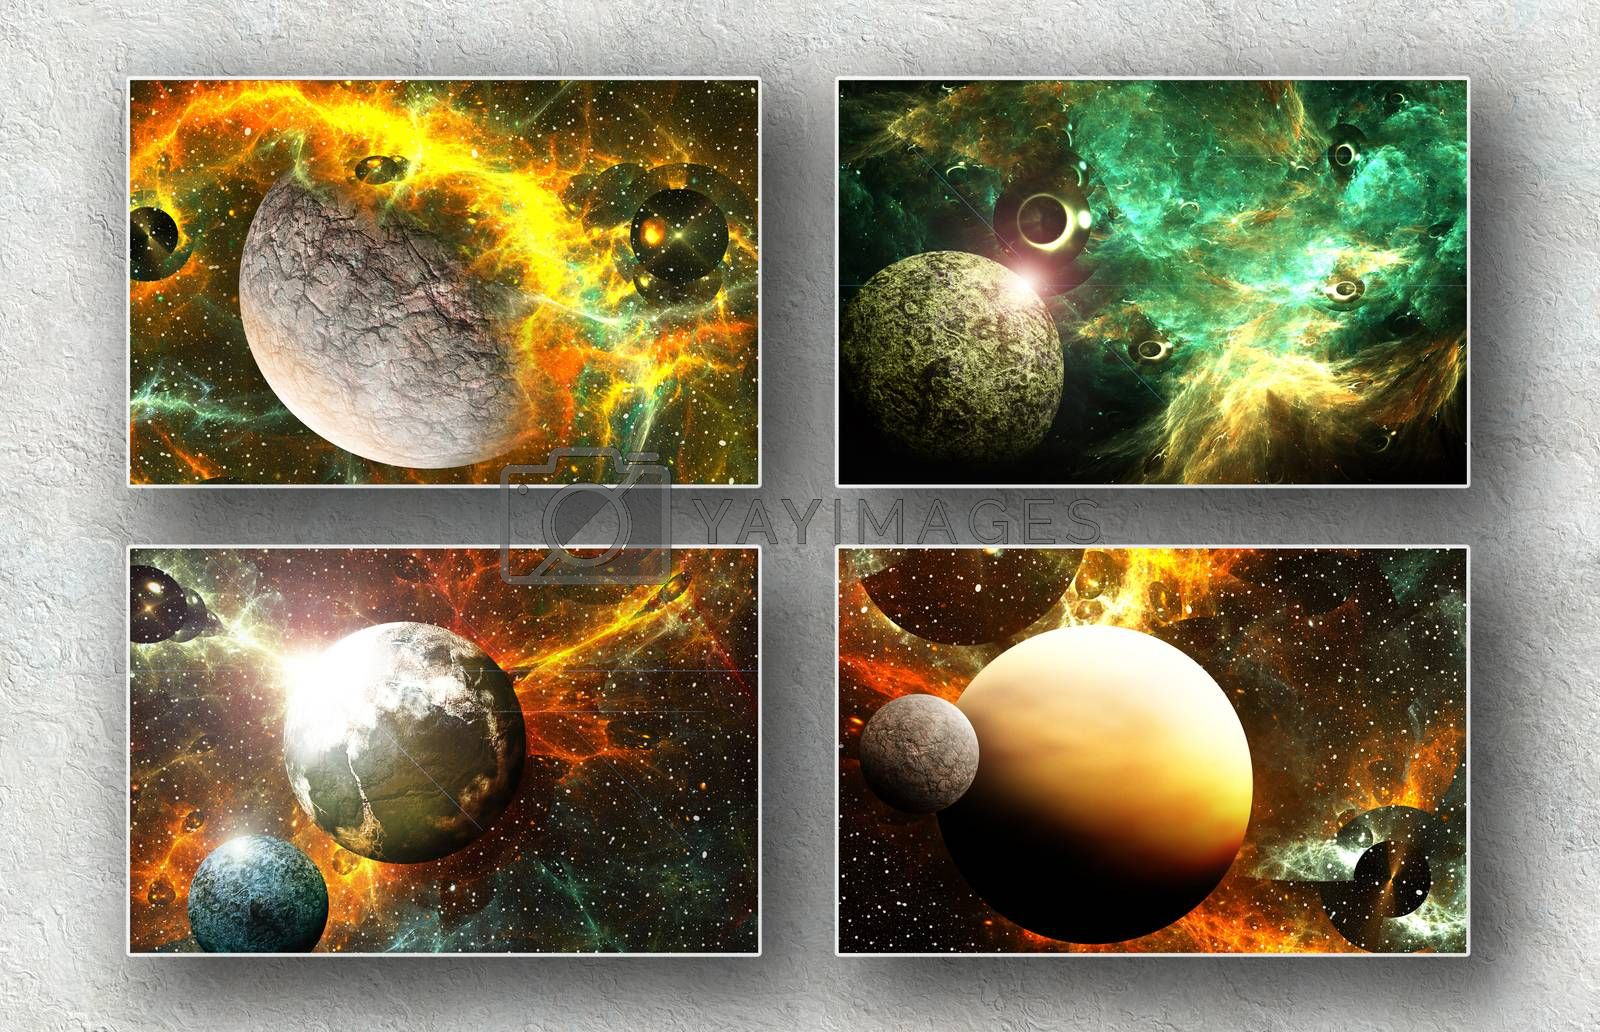 3D Image gallery with color digital art  elements ready for art printing  and house and office decoration